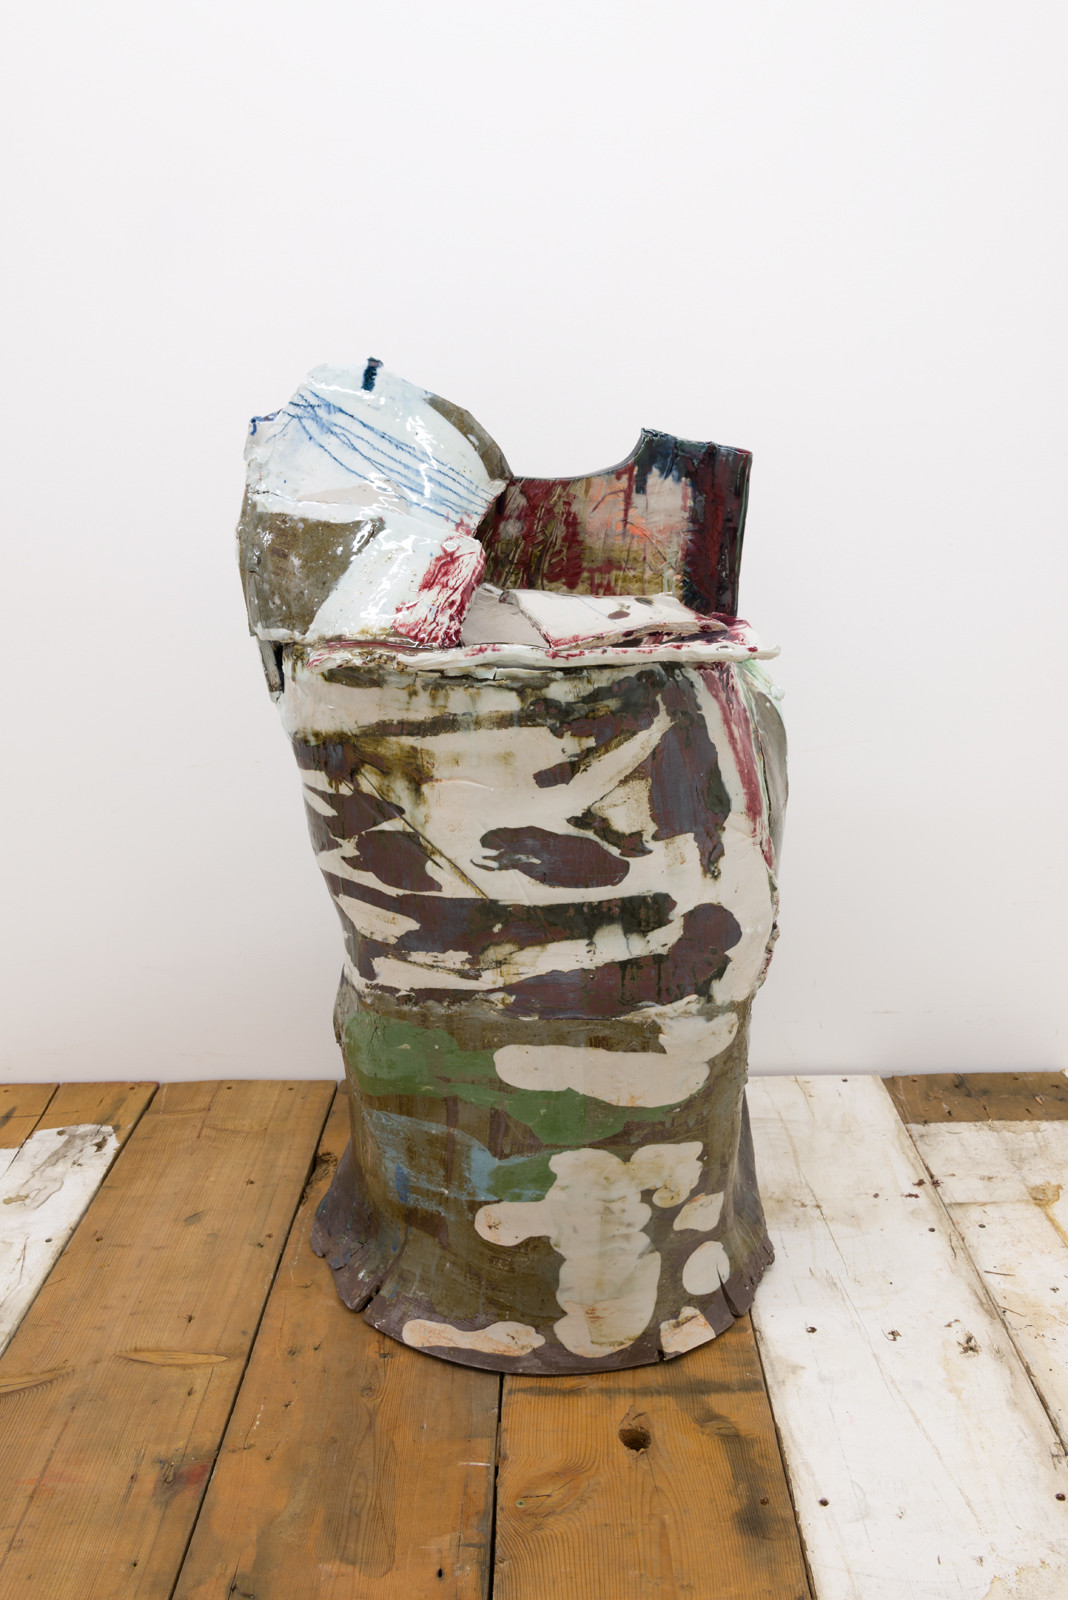 """Jennie Jieun Lee's """"Adeline Boone"""" (2017), glazed stoneware and porcelain, 36 inches by 22 inches by 13 inches"""